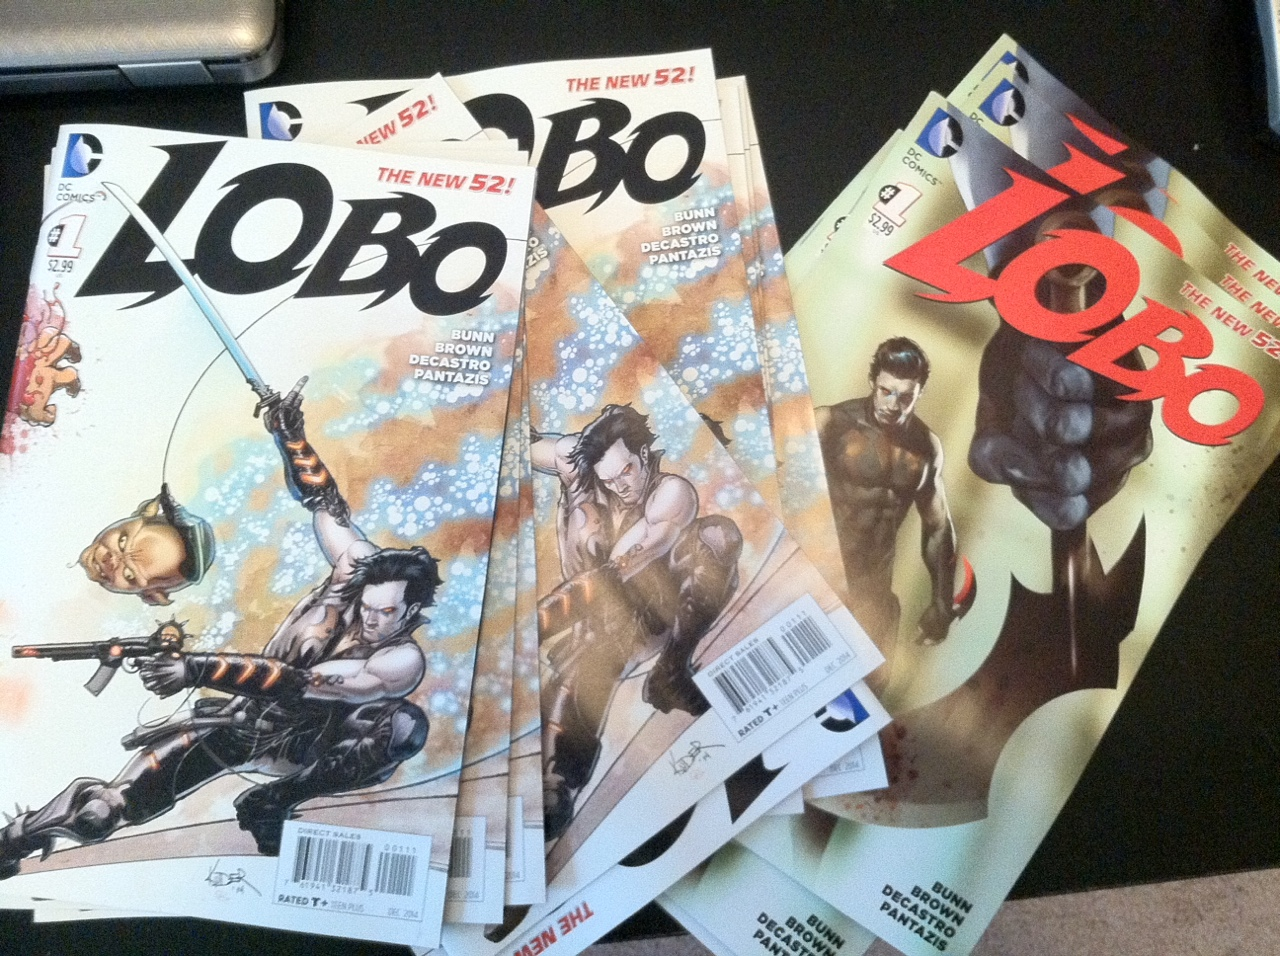 Lobo comps came in! Looking bad ass!